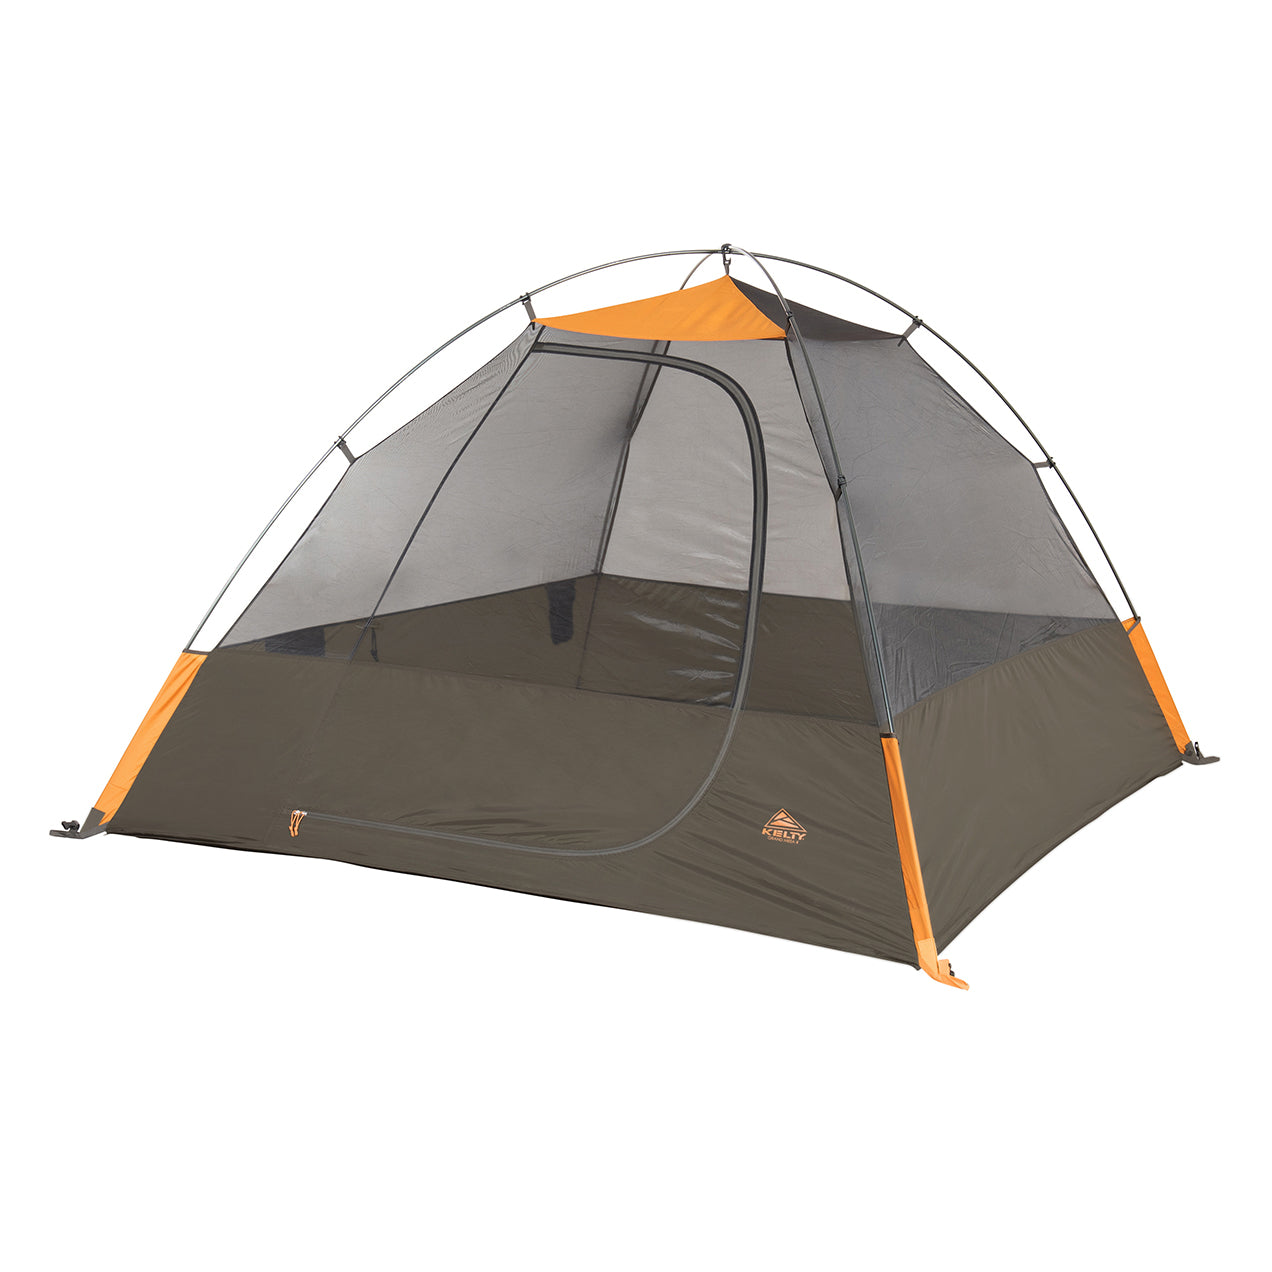 kelty grand mesa 4 person tent fly off front view in color brown with orange accents